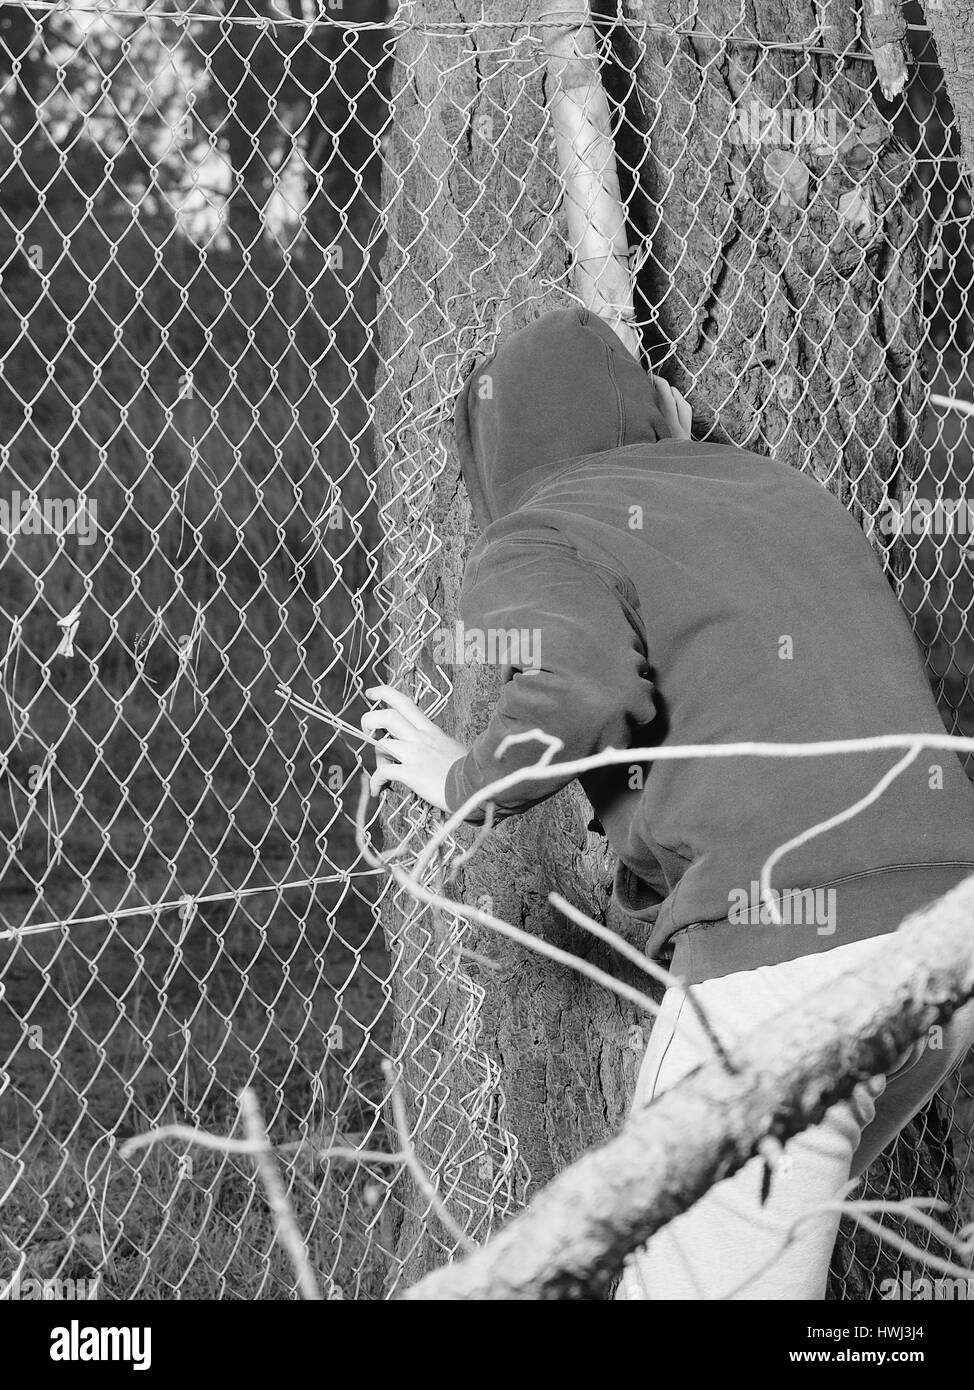 Person crawling through a fence opening with hand clinging to a steel wire , black and white, Australia 2016 - Stock Image